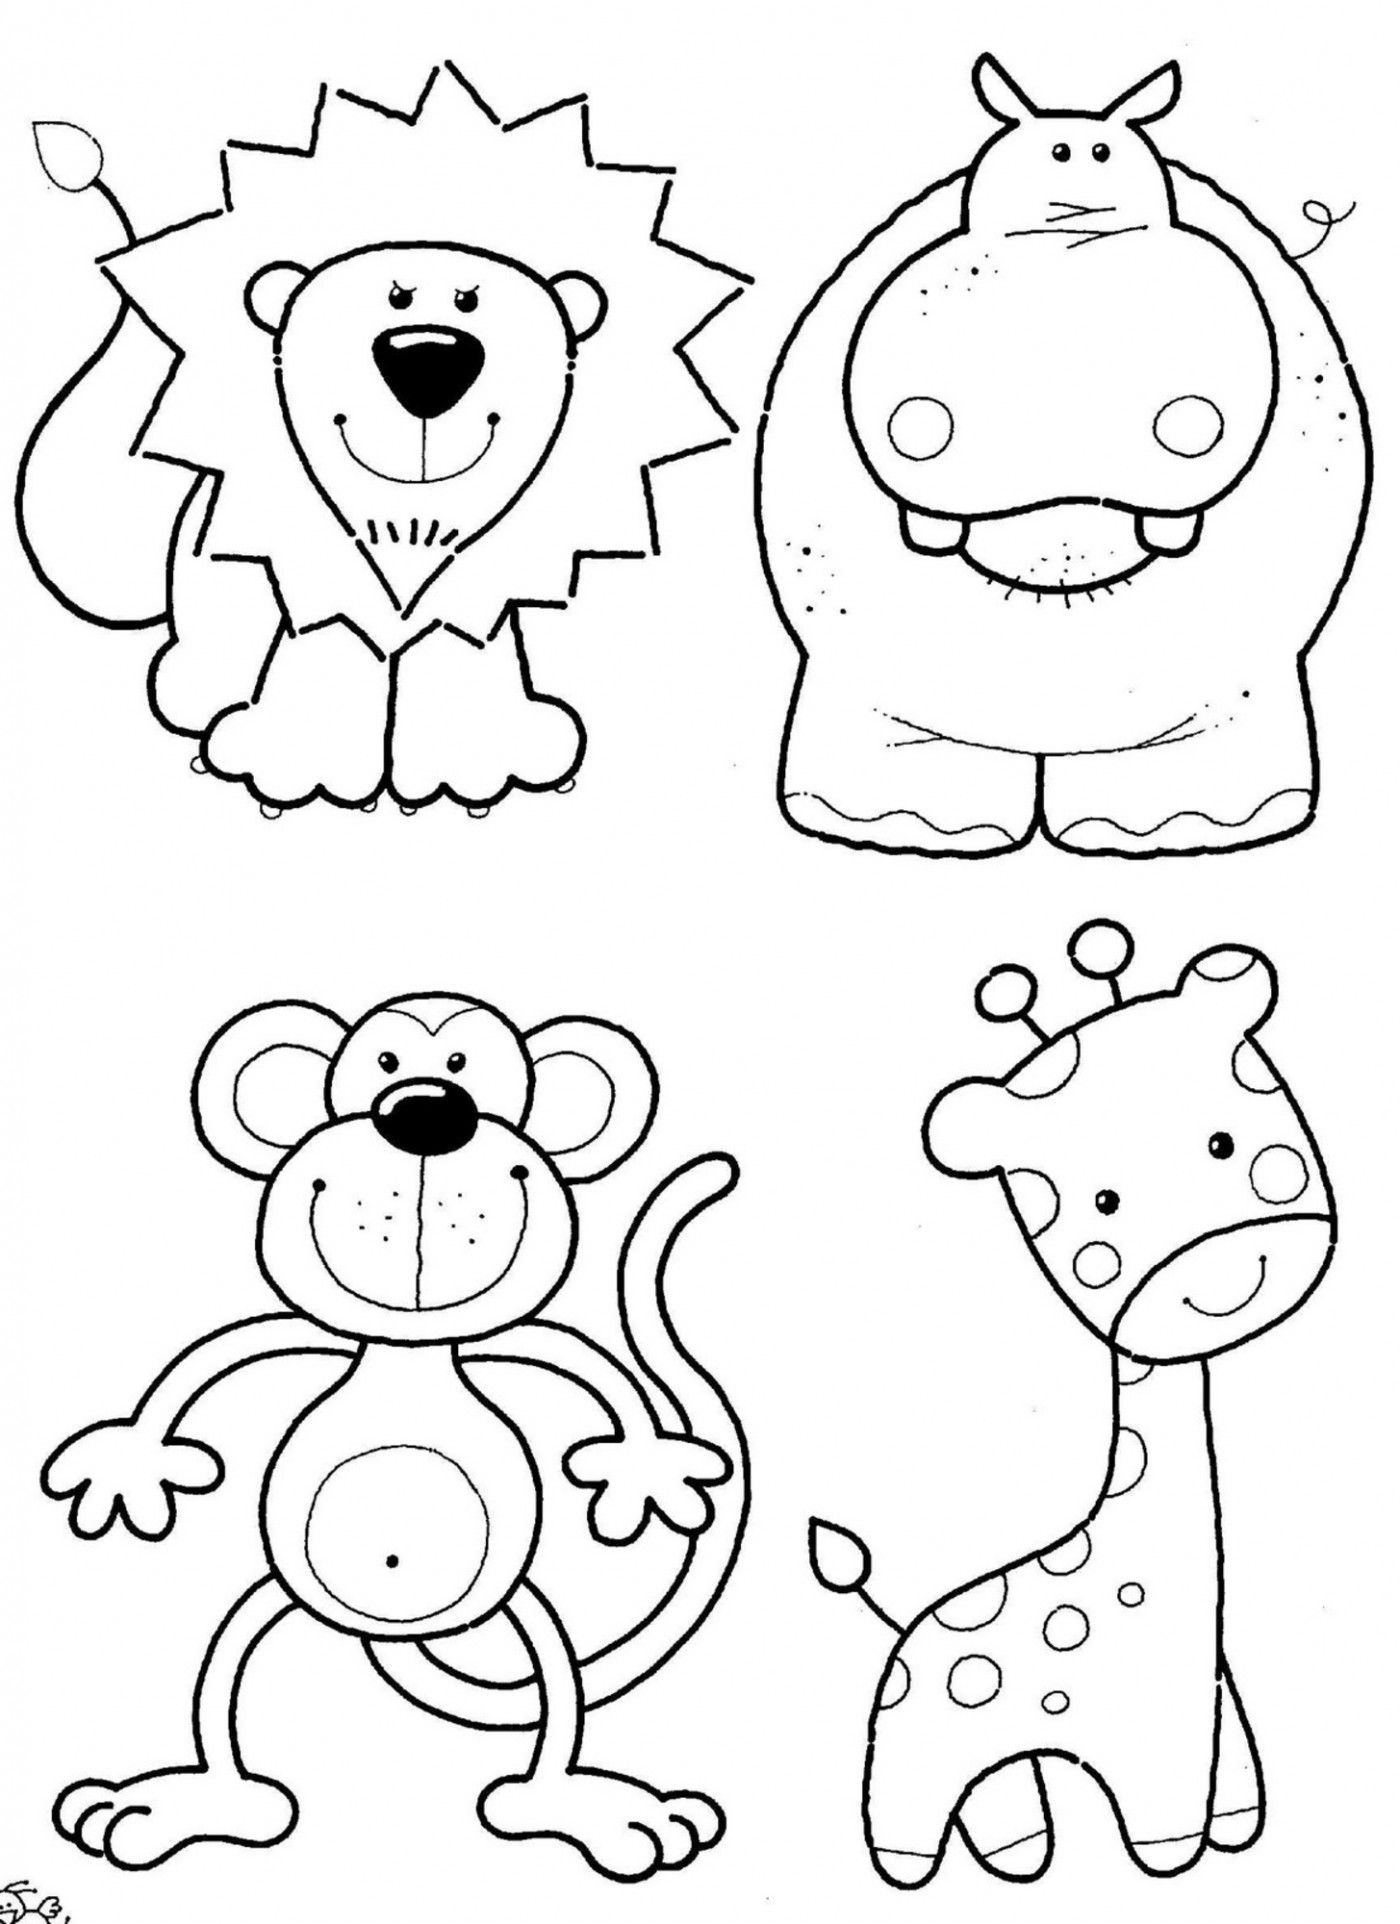 Colouring sheets to colour - Animal Coloring Pages 14